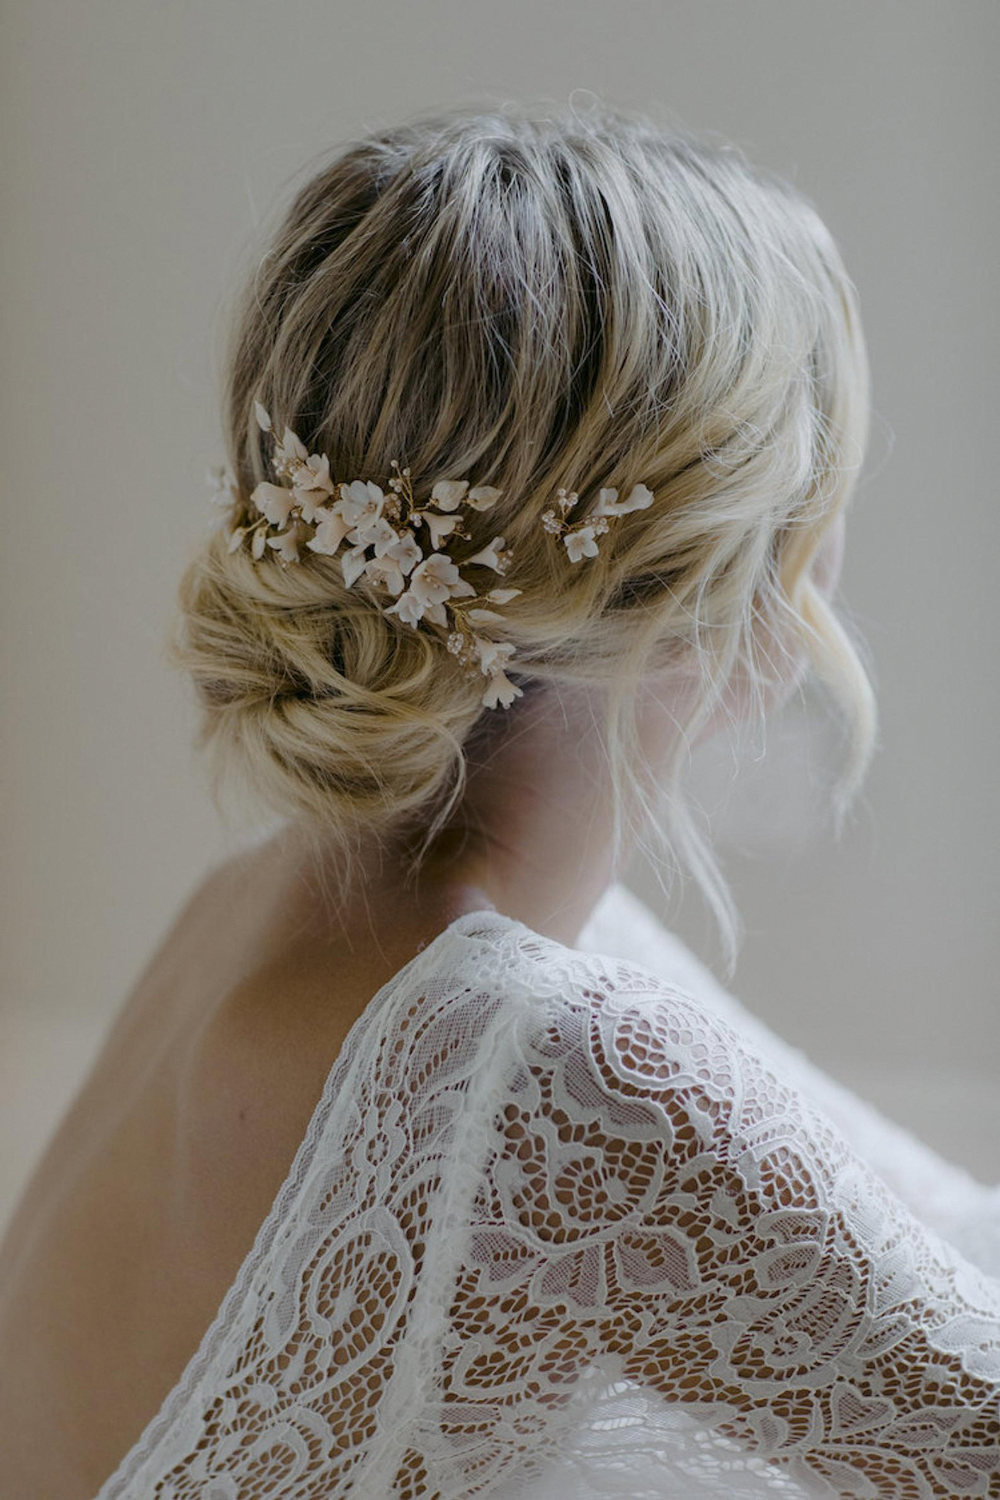 CHERRY BLOSSOM | wedding hair pieces, bridal hair pins